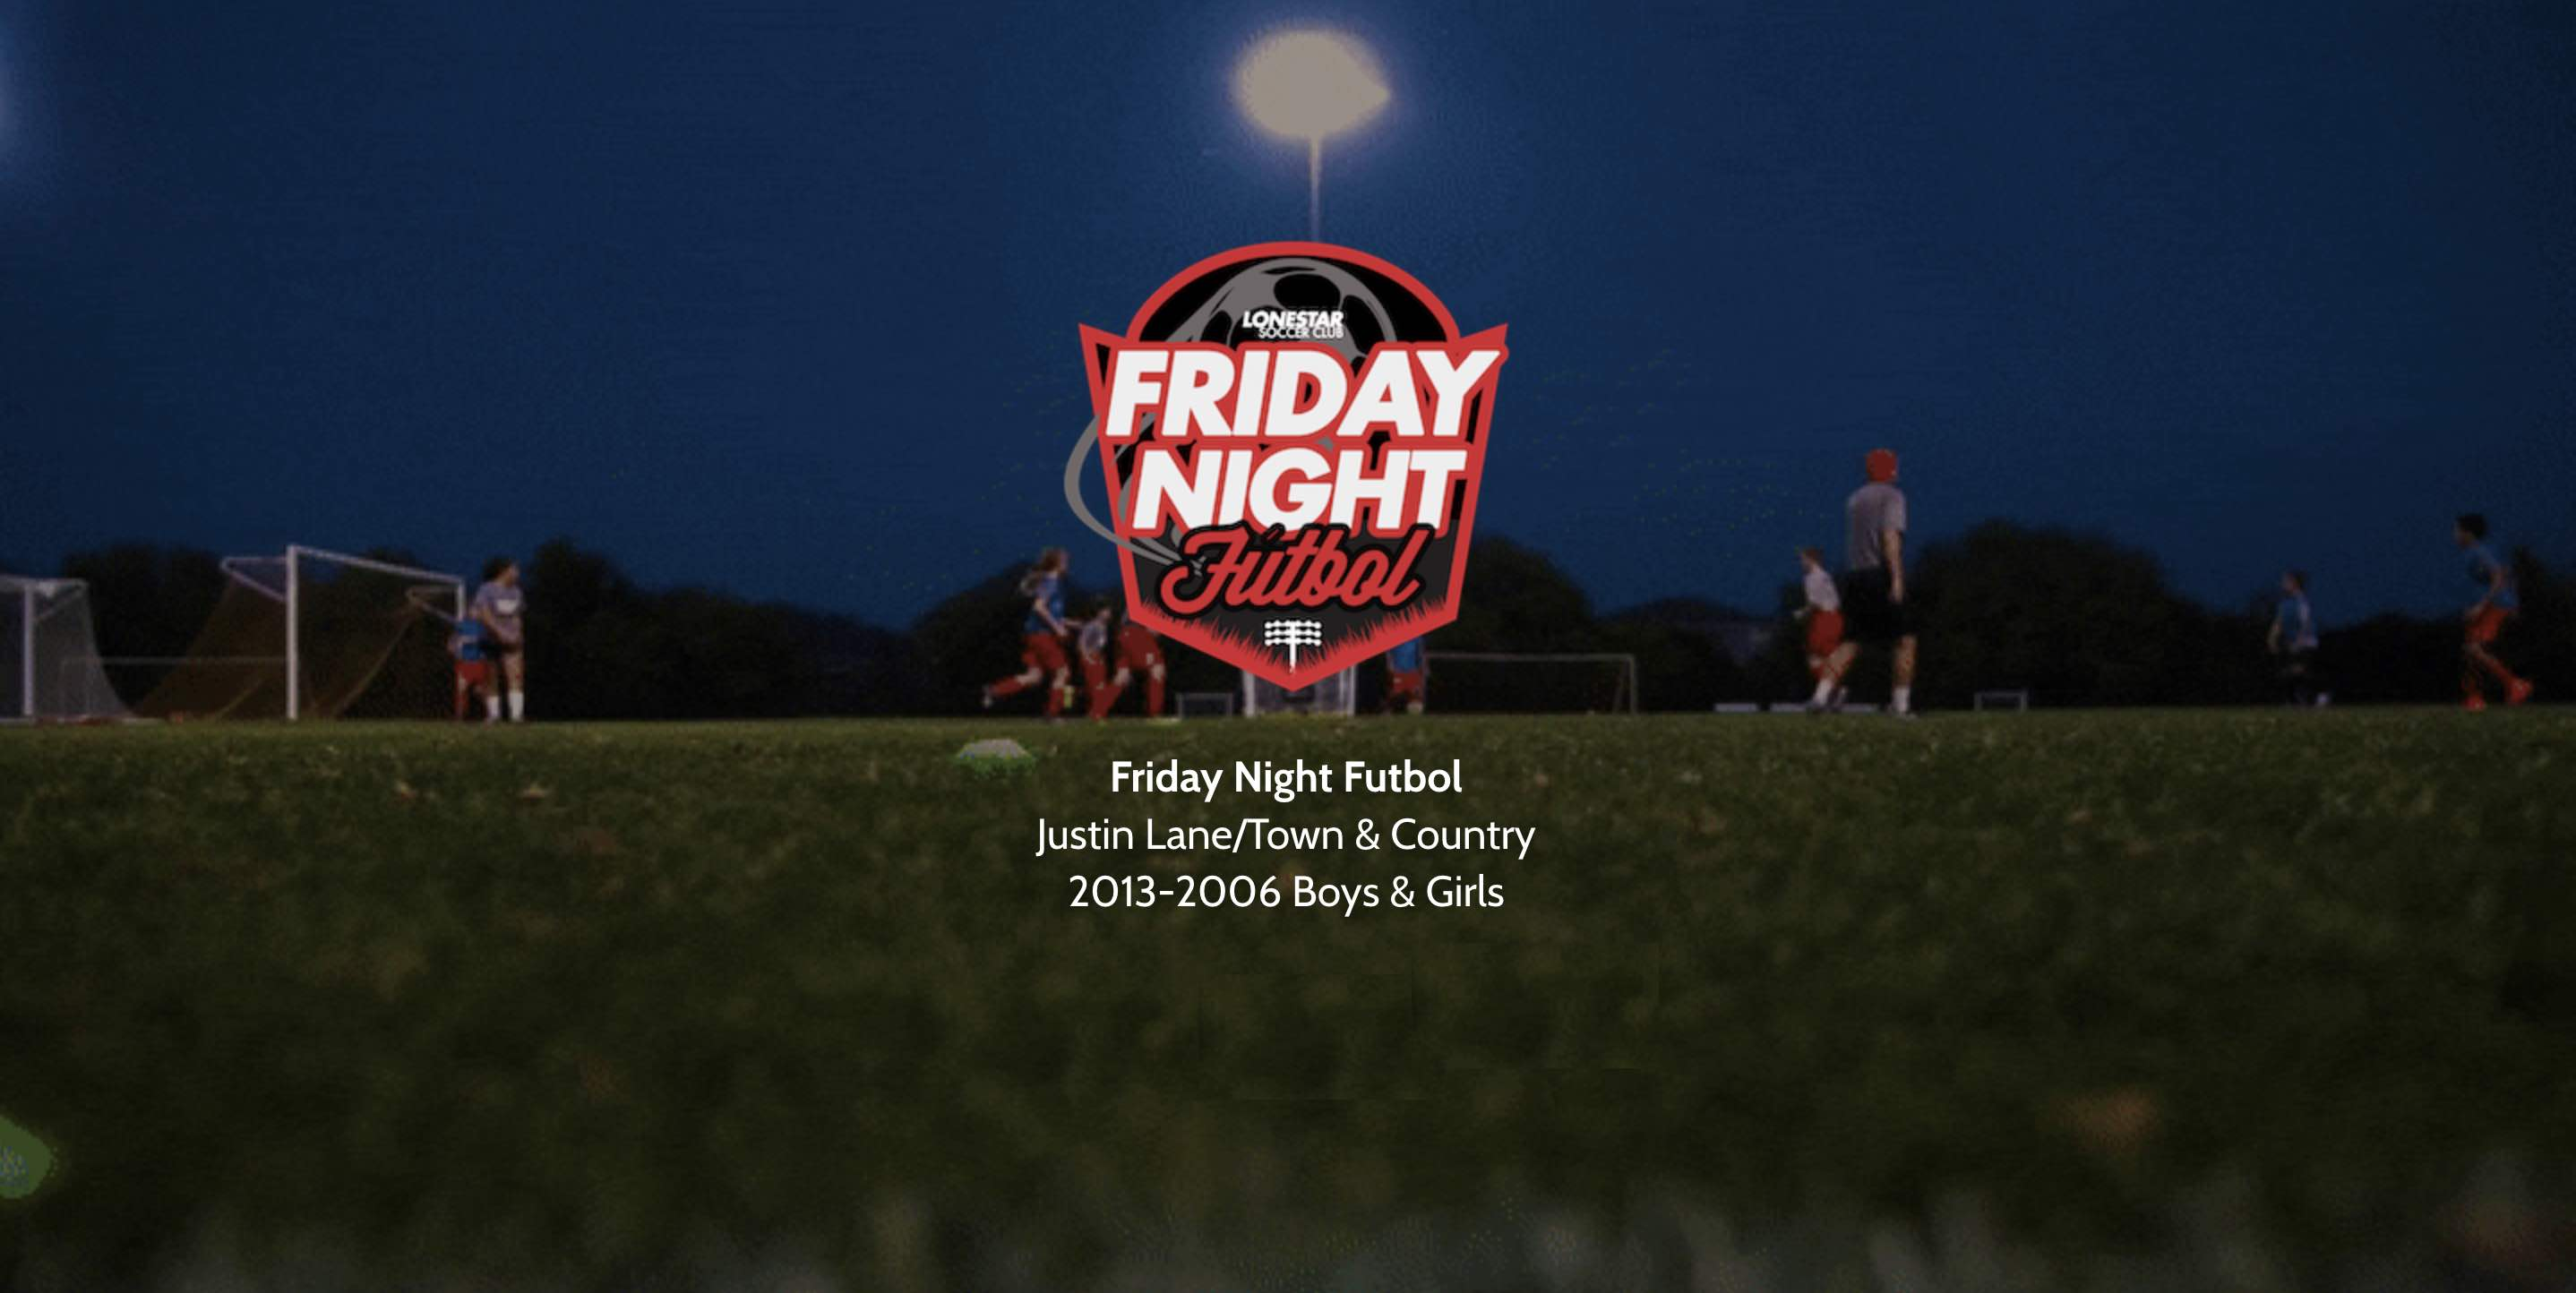 Friday Night Futbol logo